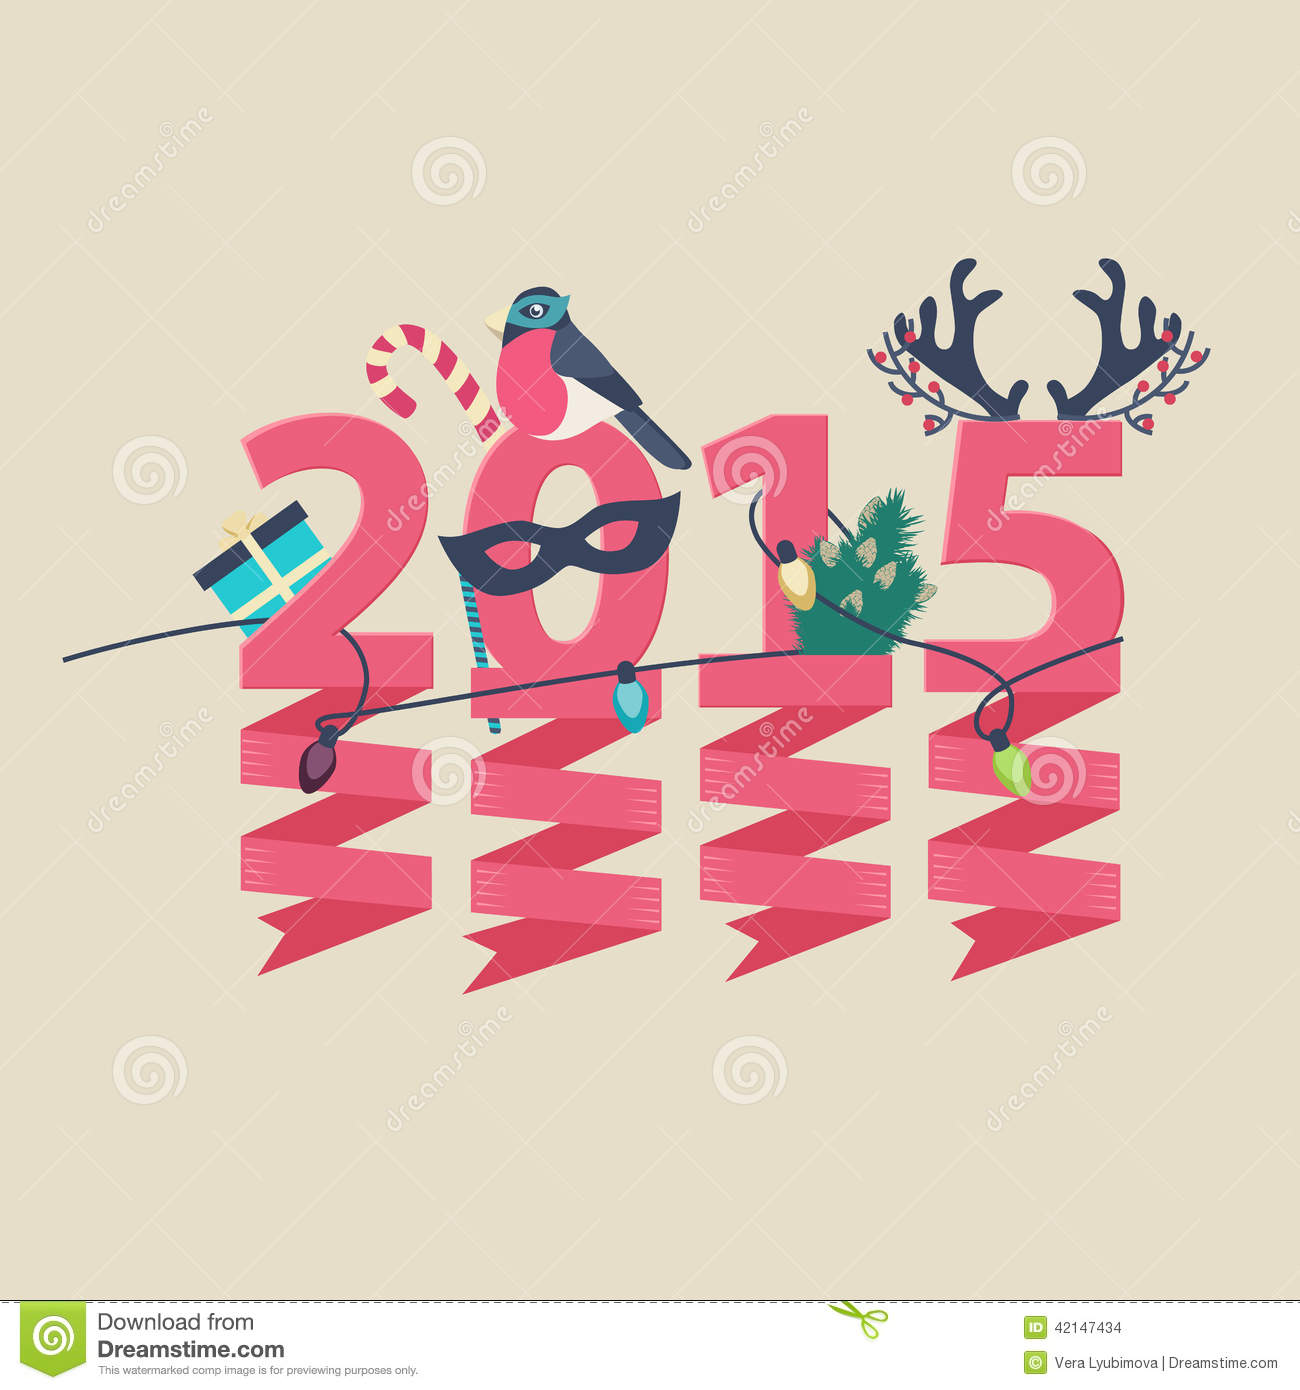 2015 new year greeting card design stock vector illustration of 2015 new year greeting card design kristyandbryce Choice Image